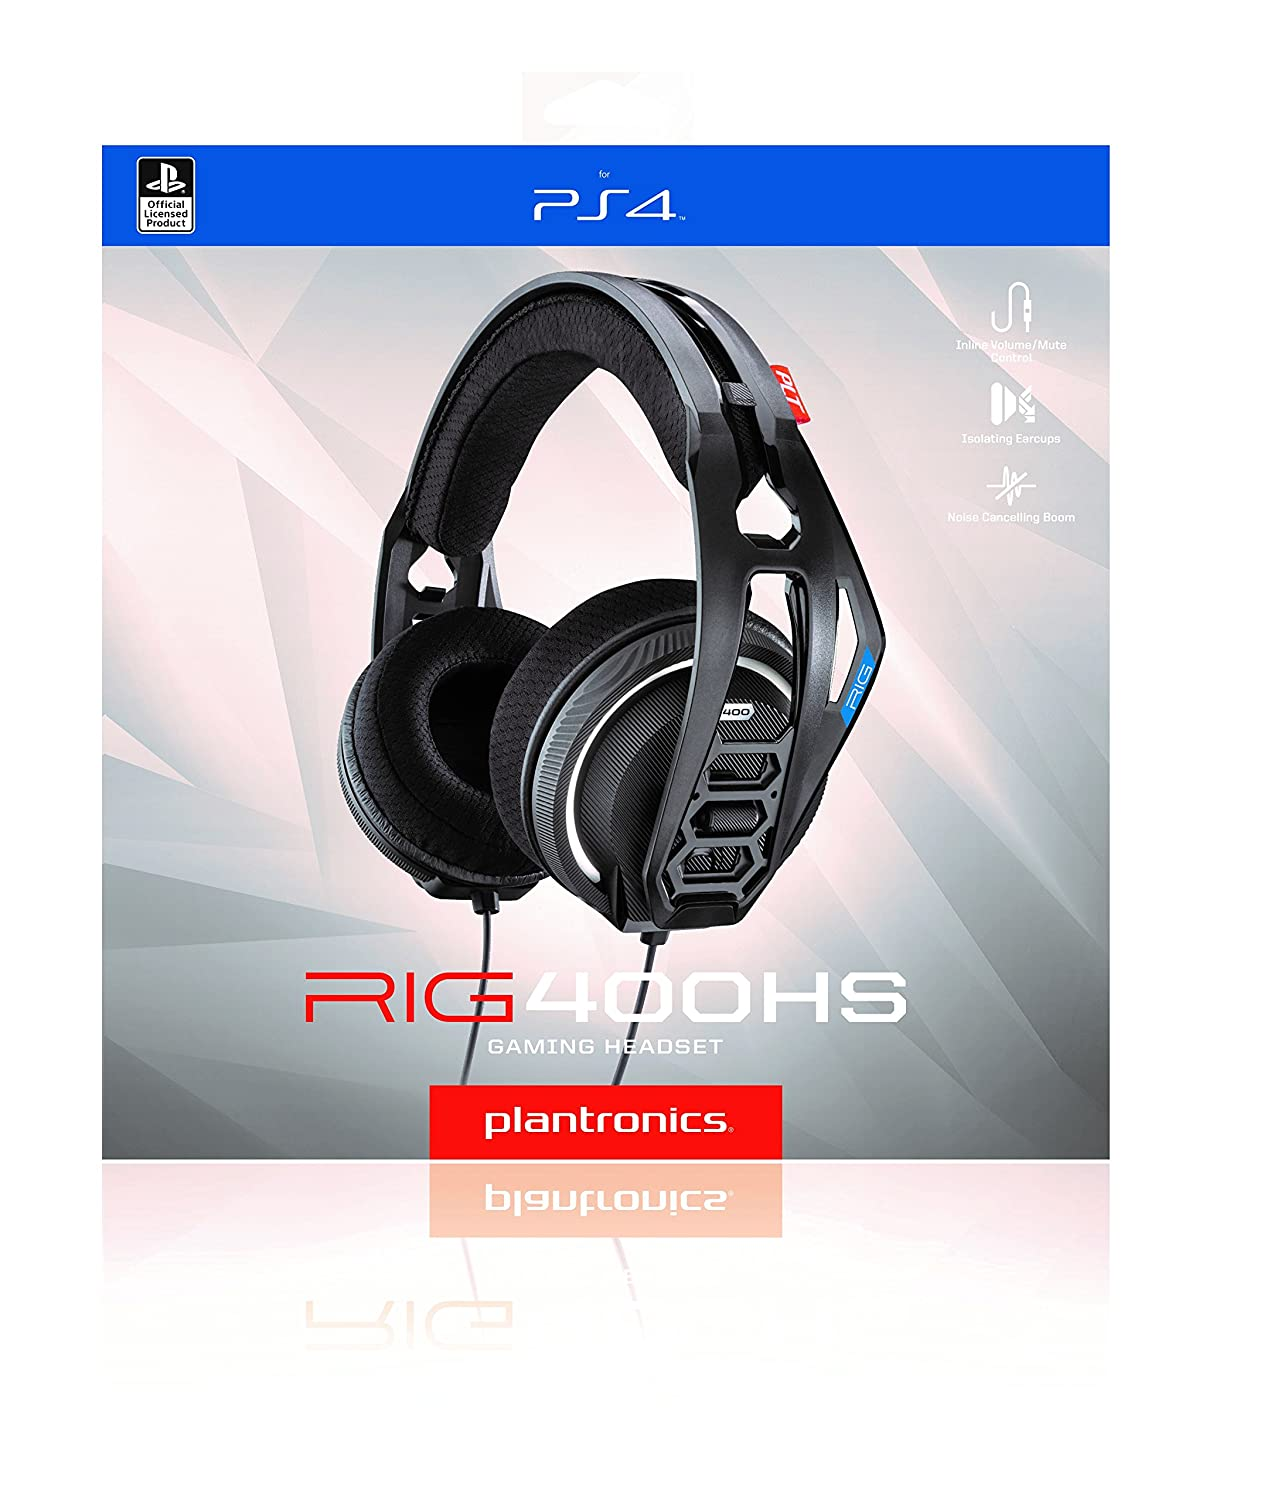 Amazon.com: Plantronics RIG 400HS Stereo PS4 Gaming Headset Headphones & Boom Mic | Black: Electronics